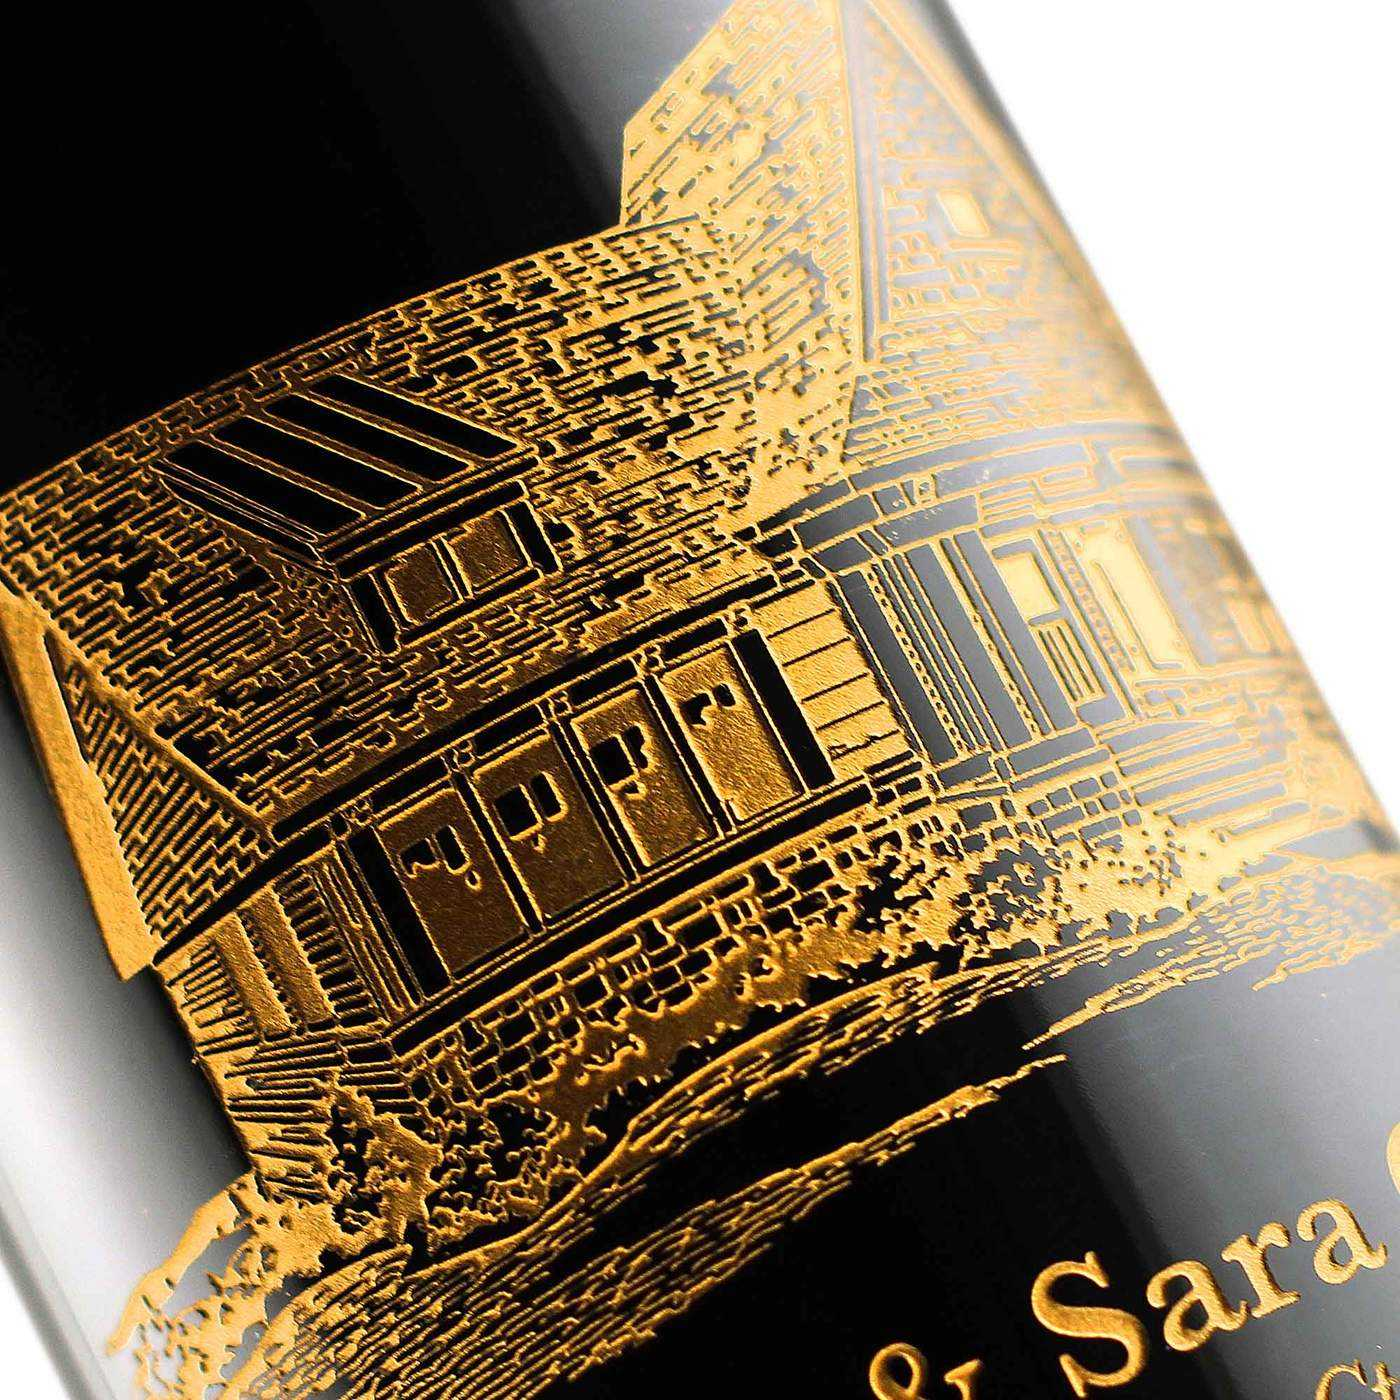 real estate customized wine bottles for etching expressions